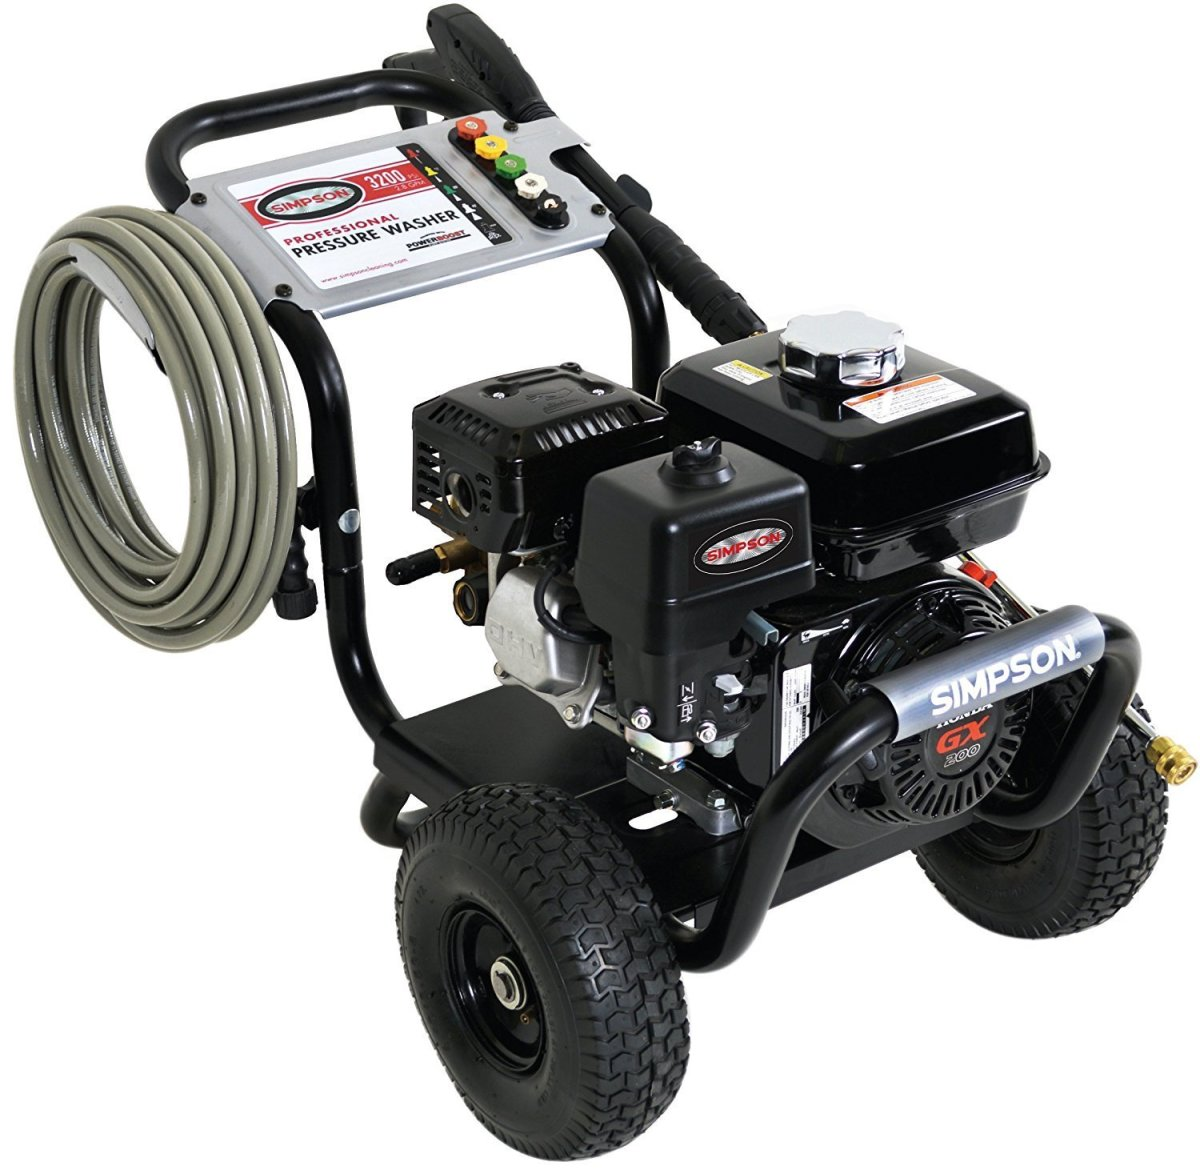 Simpson PS3228 Powershot Pressure Washer - Pros and Cons From an Owner